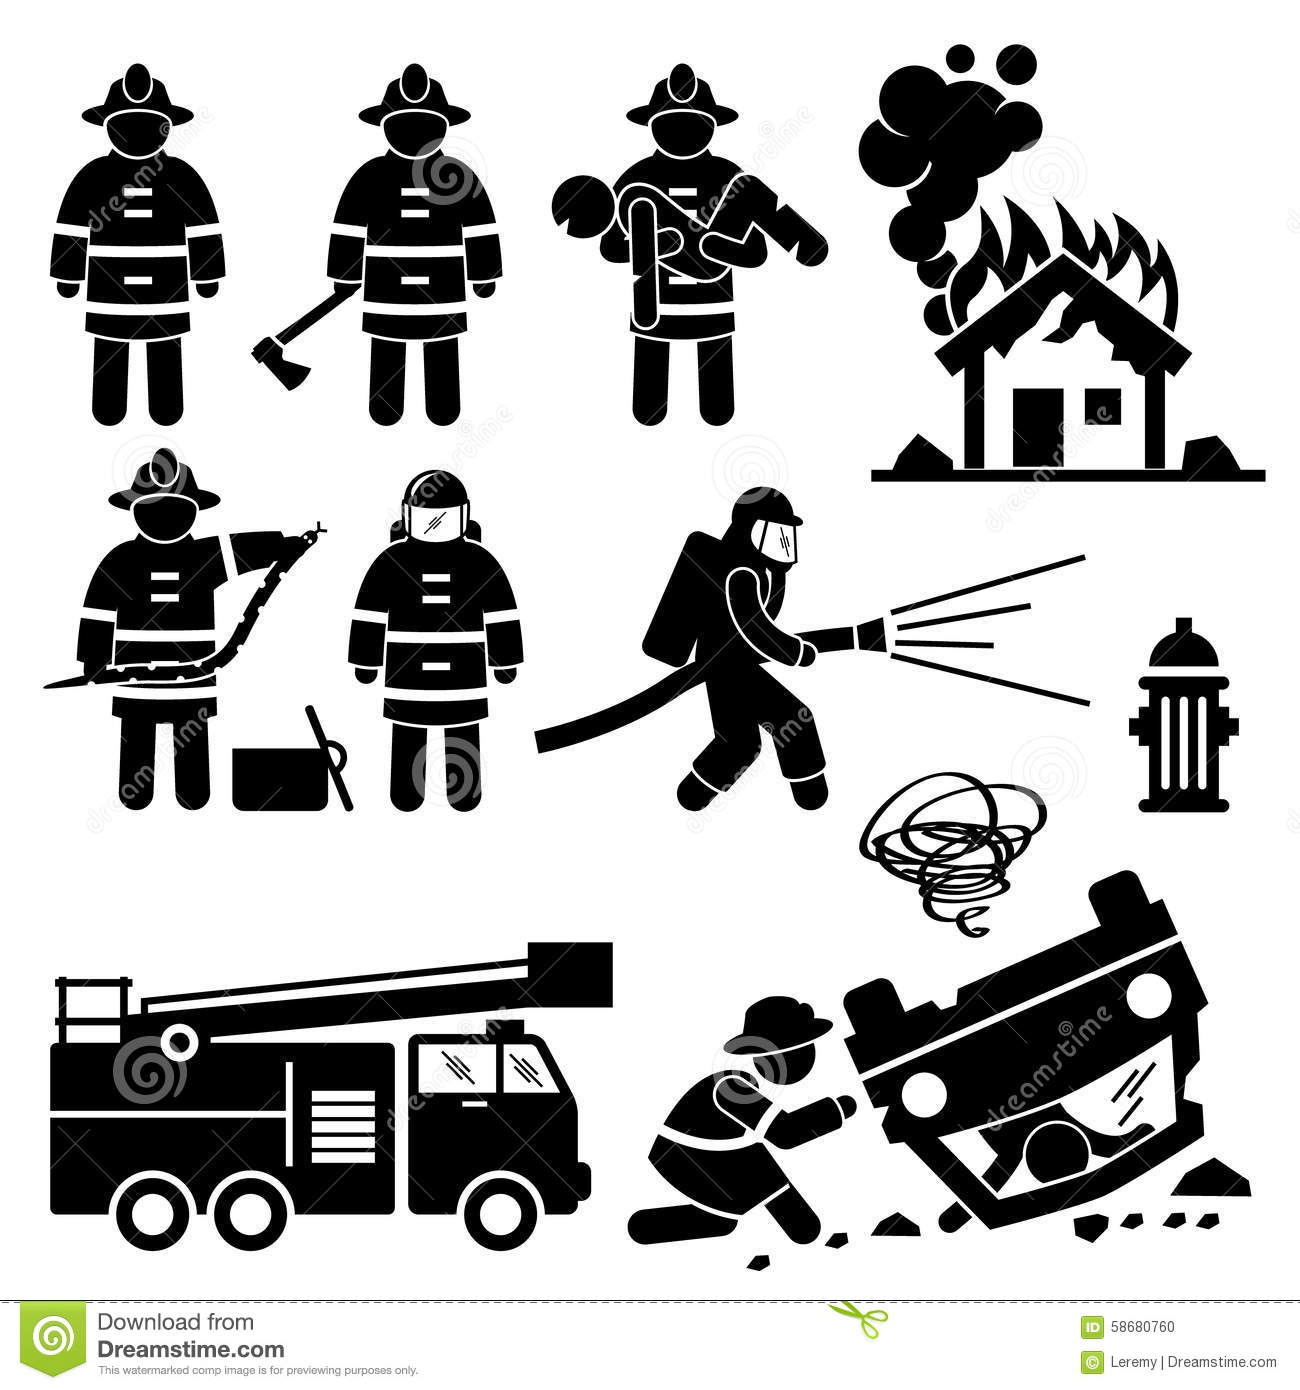 Firefighter Fireman Rescue Cliparts Stock Vector